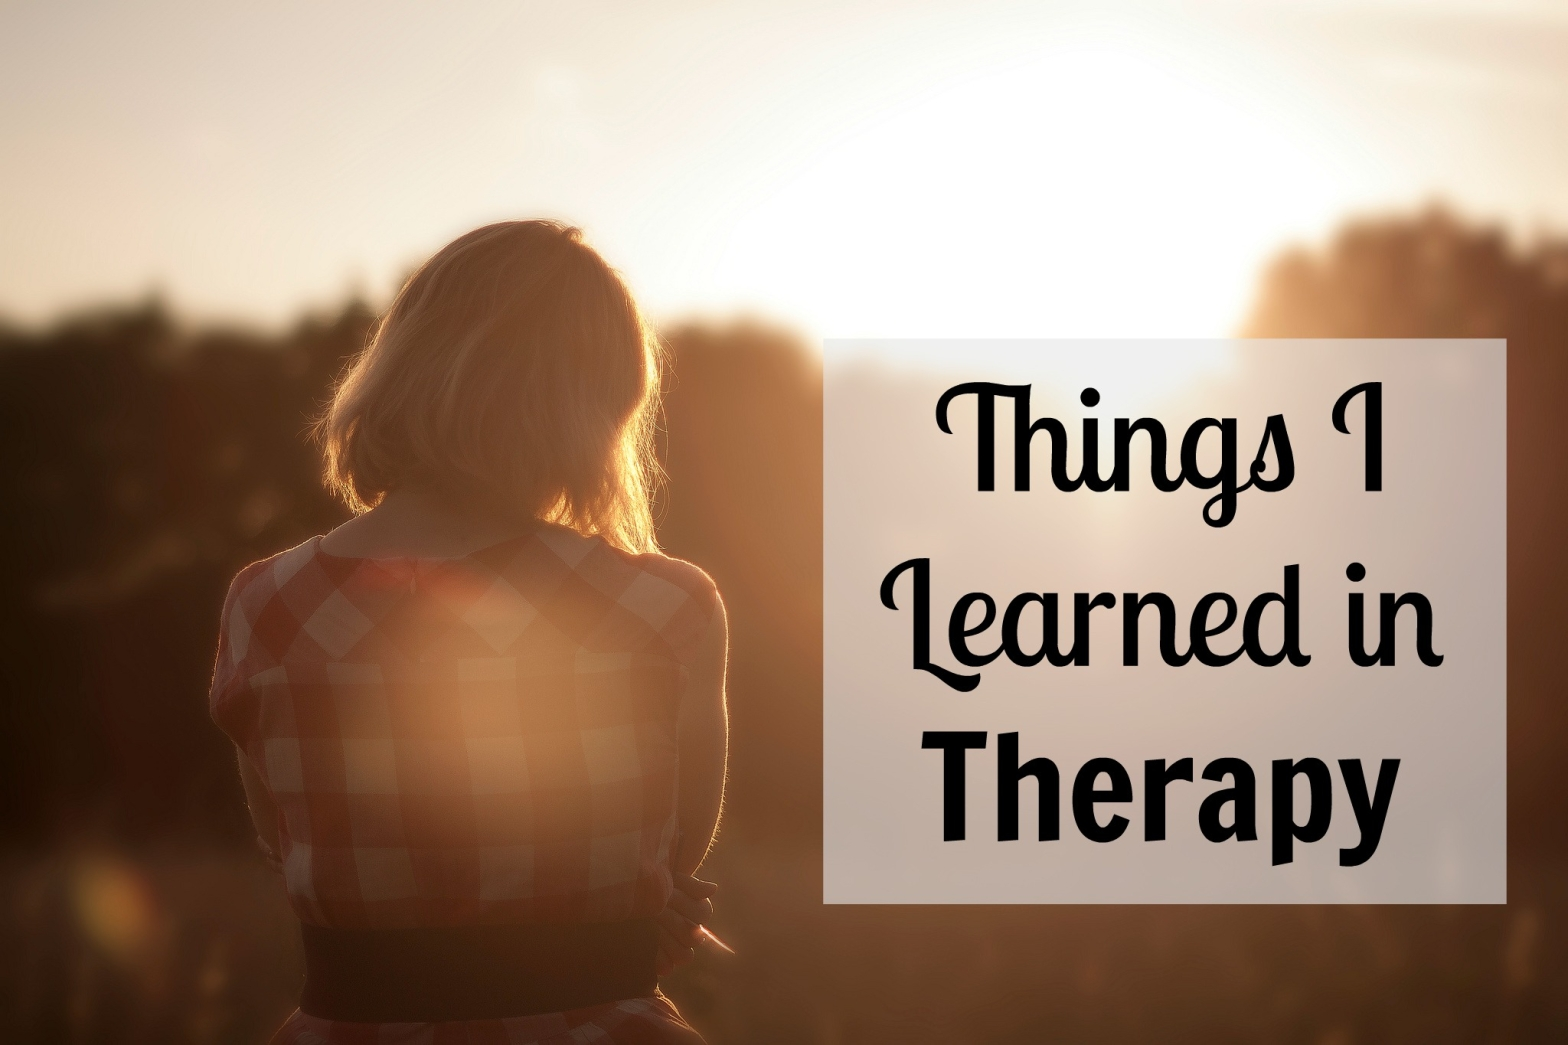 Things I Learned in Therapy image